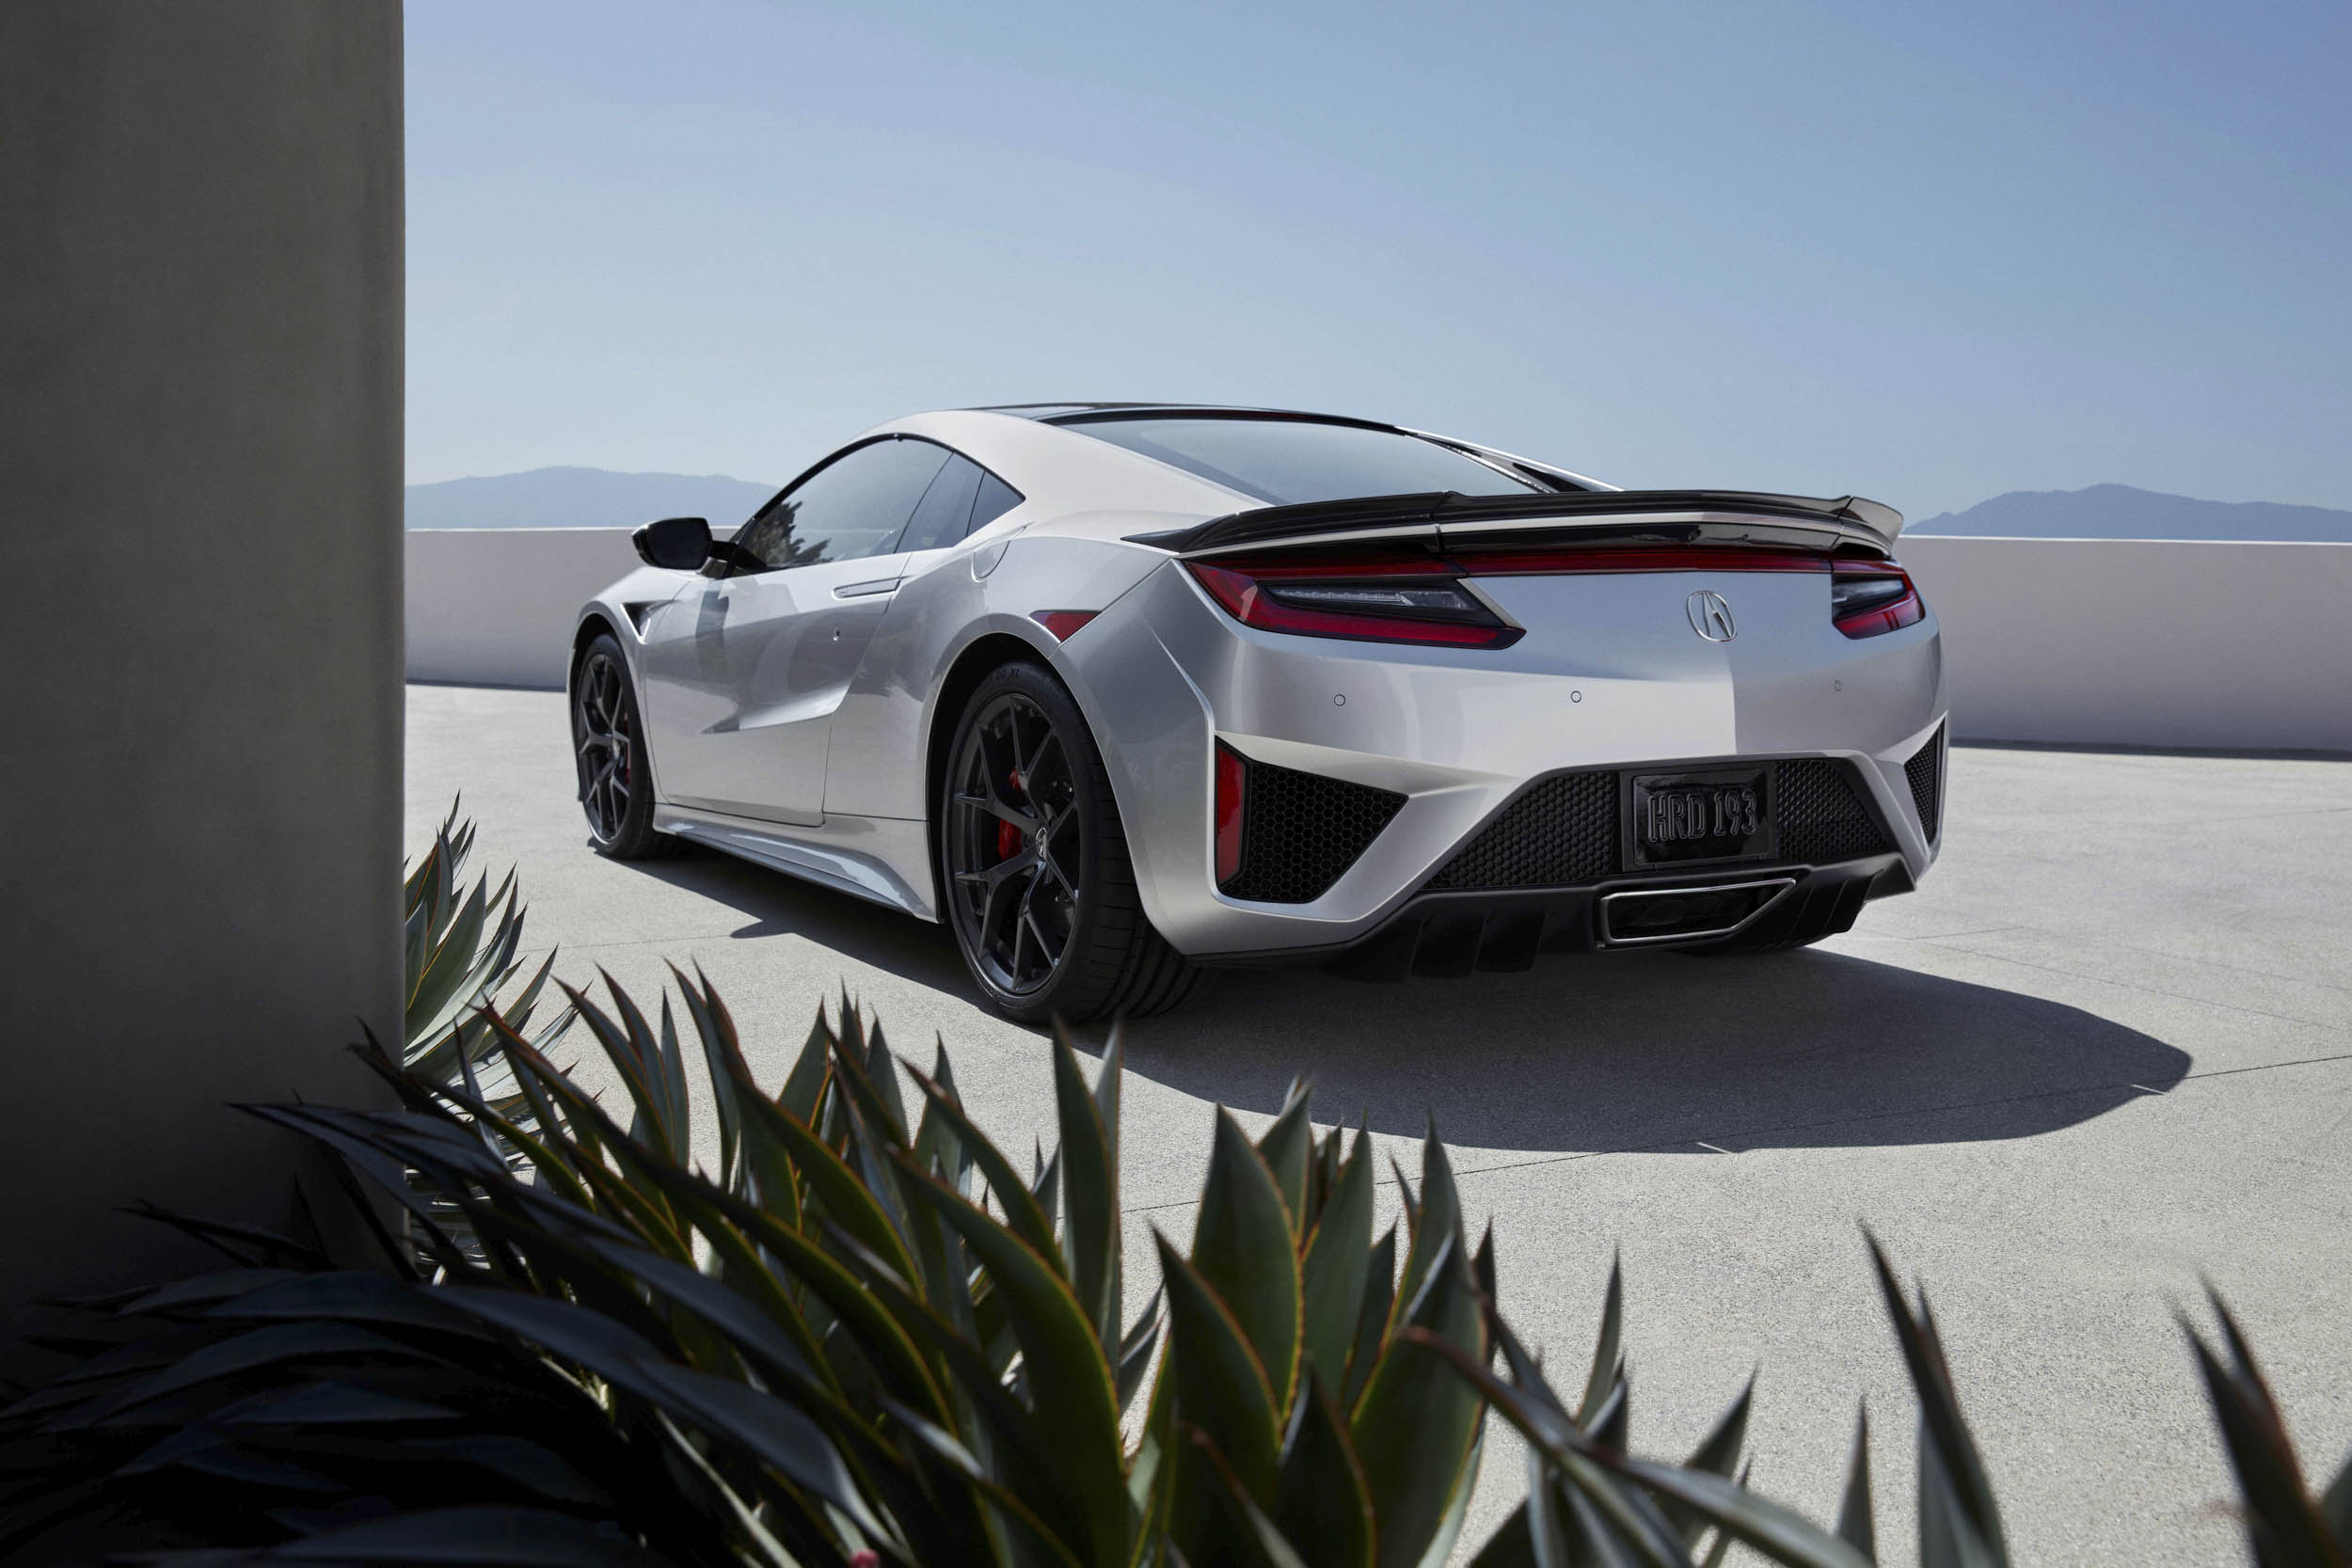 2019 Acura NSX rear 3/4